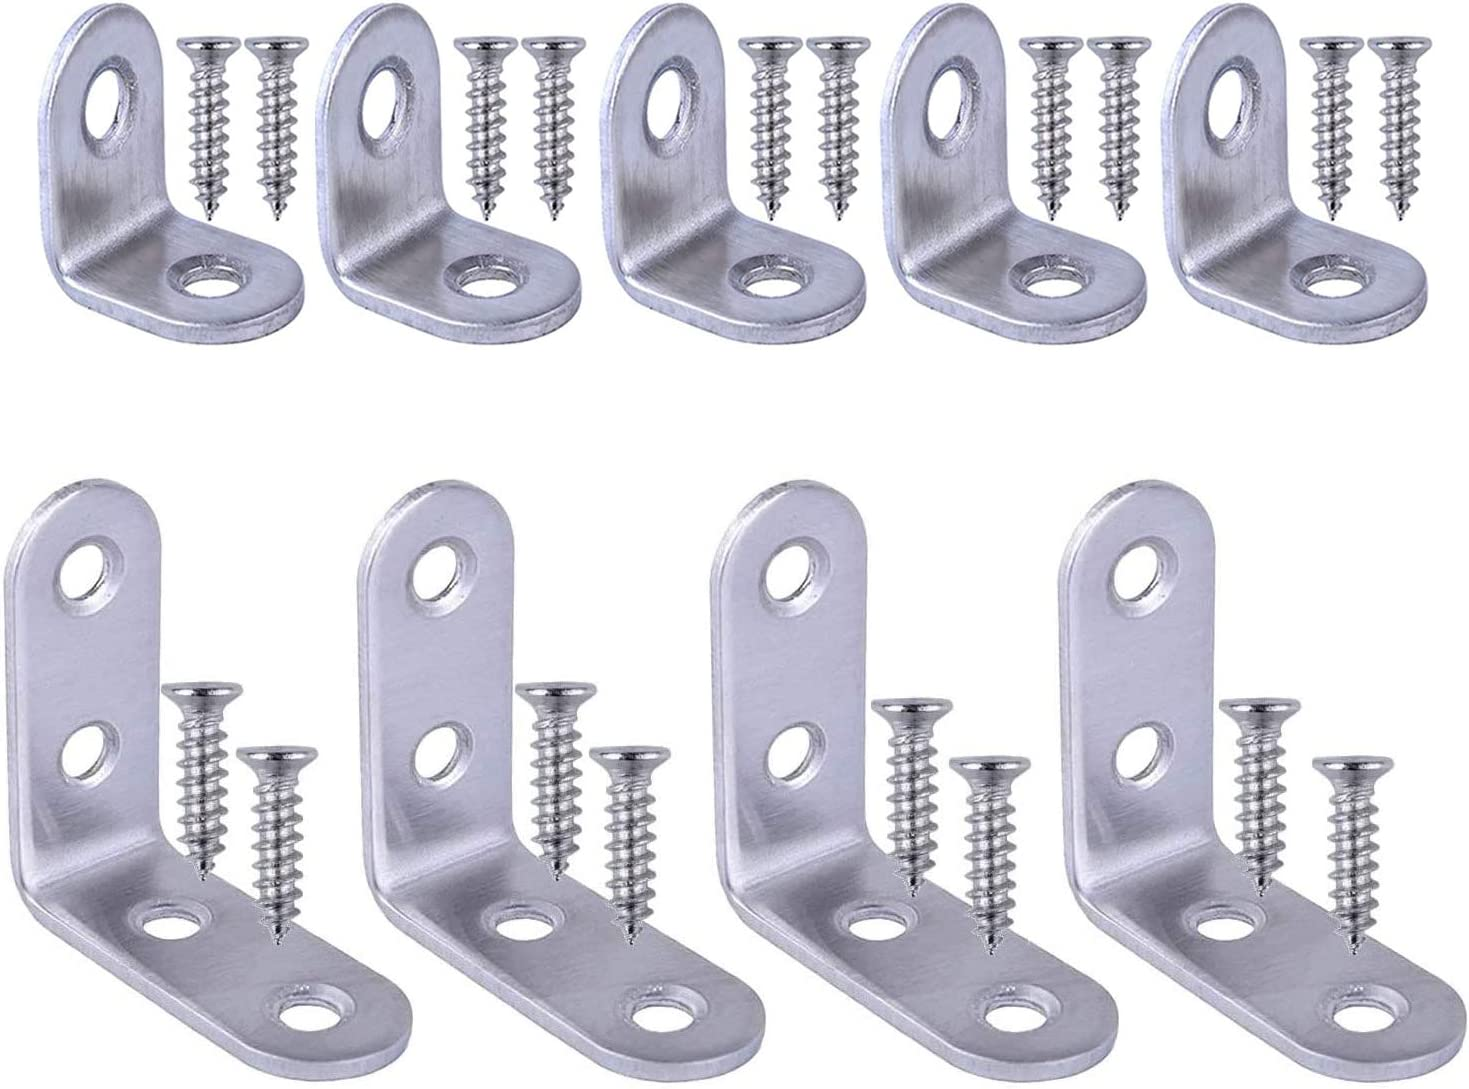 Challenge the lowest price of Japan 30 pcs Corner Brace L Brackets 90 Degree Angle J All items free shipping Steel Stainless